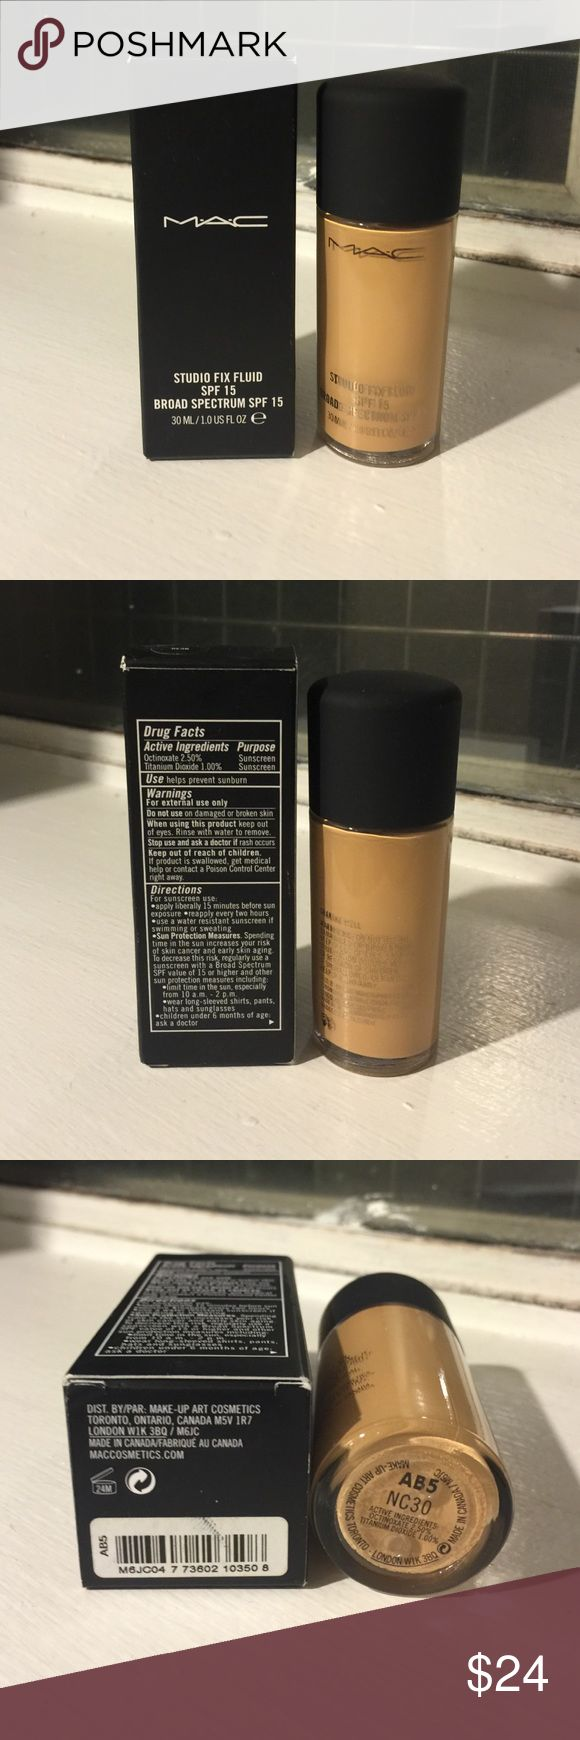 Mac Studio Fix Fluid NC30 Mac Studio fix Fluid Foundation in NC30. Brand new in box. 100% Authentic. No trading. Please ask any question before buying. Thank you MAC Cosmetics Makeup Foundation